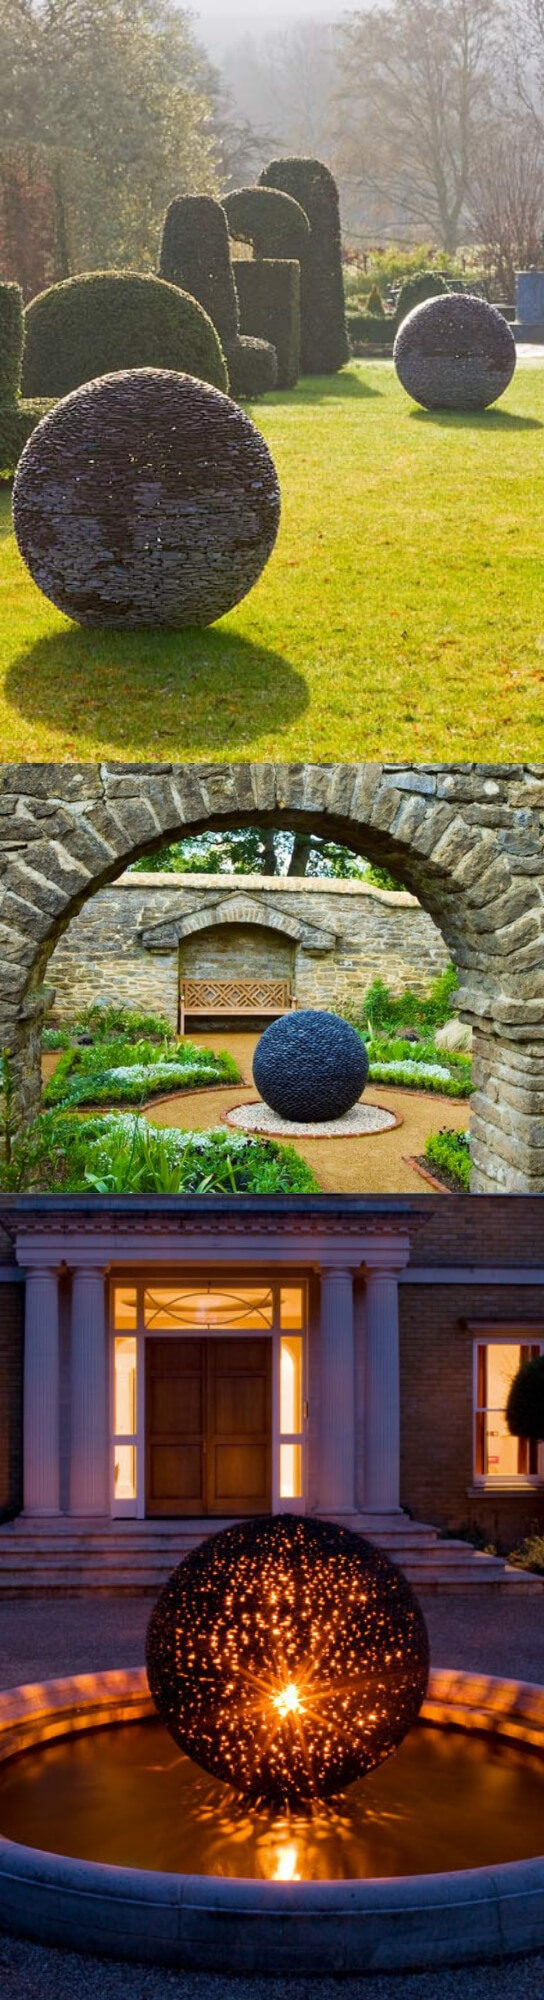 Garden Symmetrical Spheres from River Stones | Best DIY Garden Globe Ideas & Designs